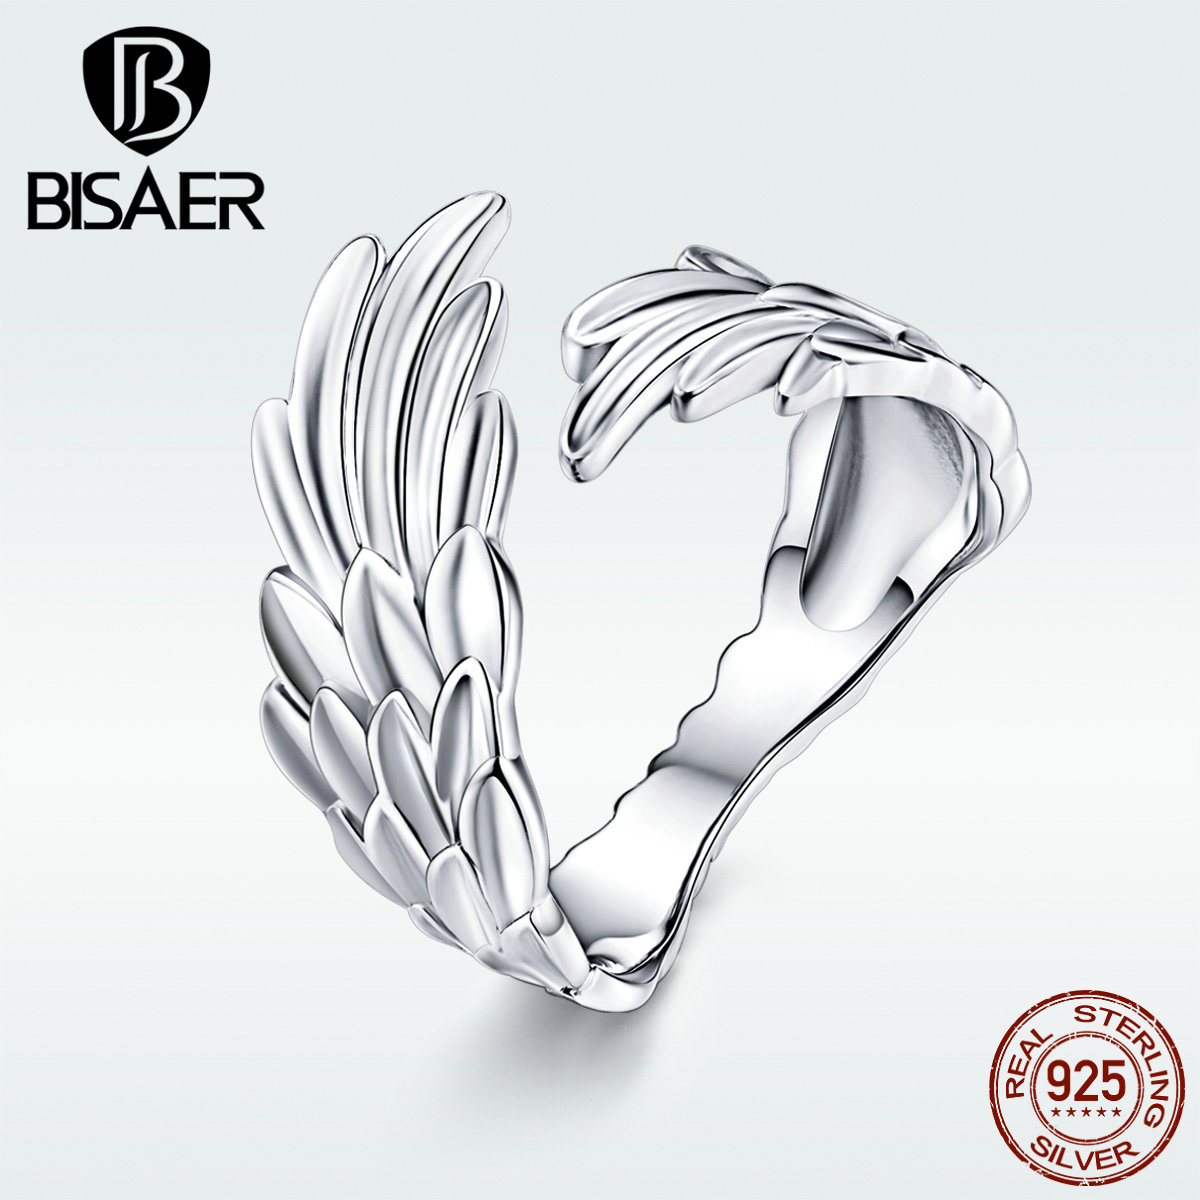 BISAER New 925 Sterling Silver Super Angel Wings Open Rings For Women Fashion Jewelry Gifts Trendy Wedding Bands Rings GXR512